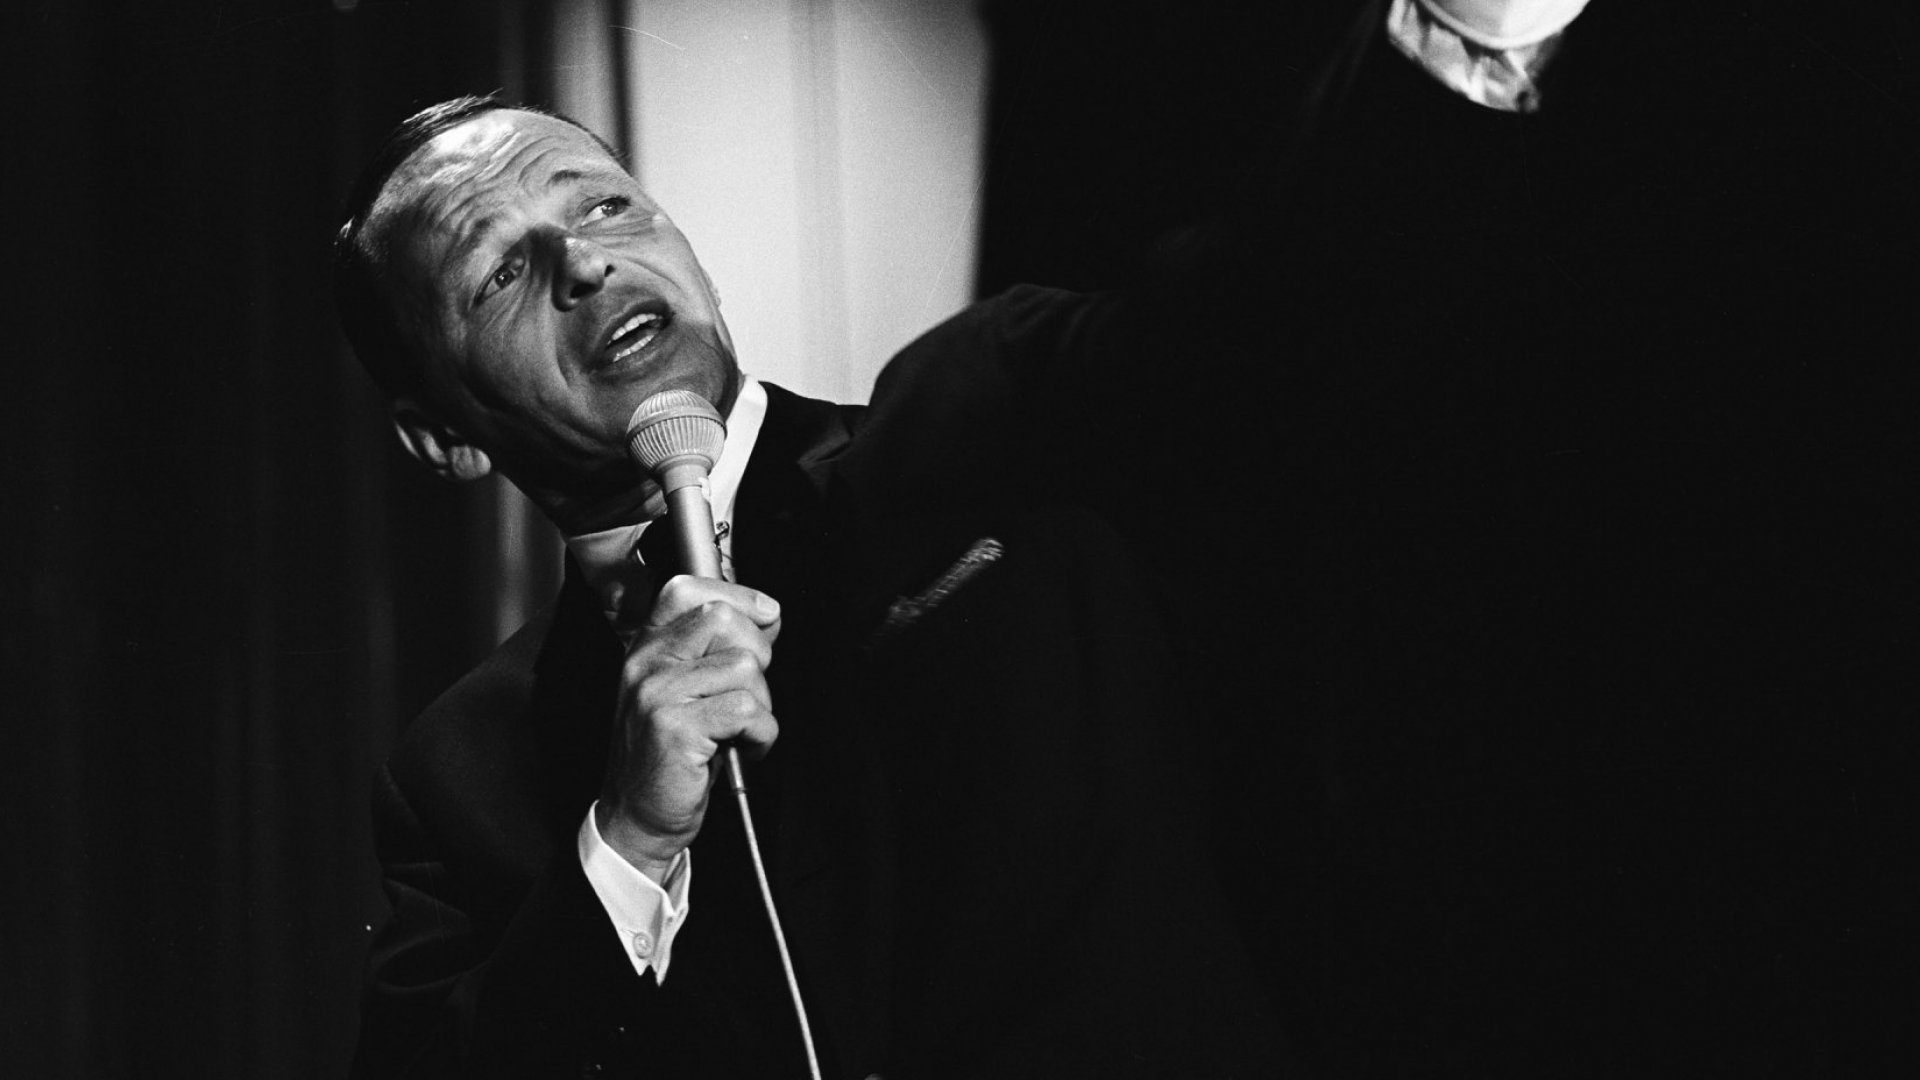 Employees Getting Under Your Skin? Follow the Example of Frank Sinatra